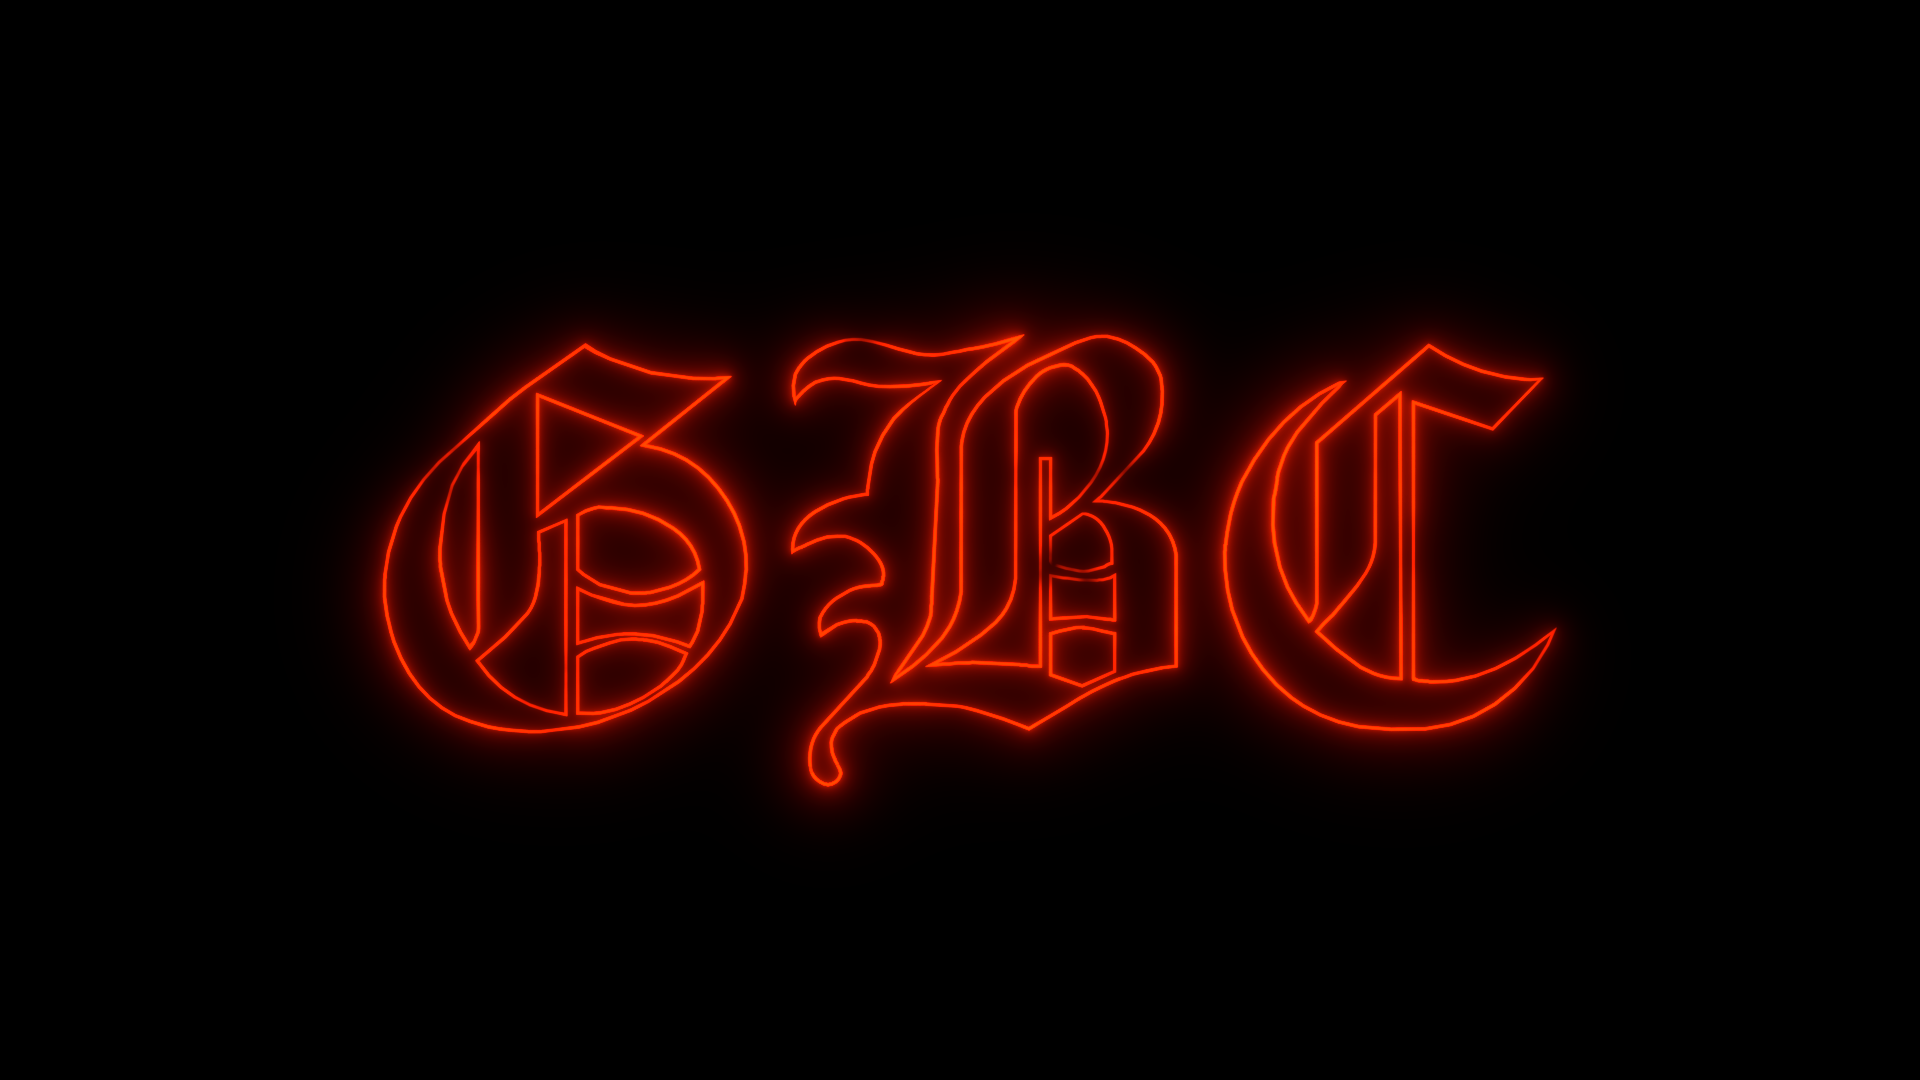 Gothboiclique Wallpapers Wallpaper Cave